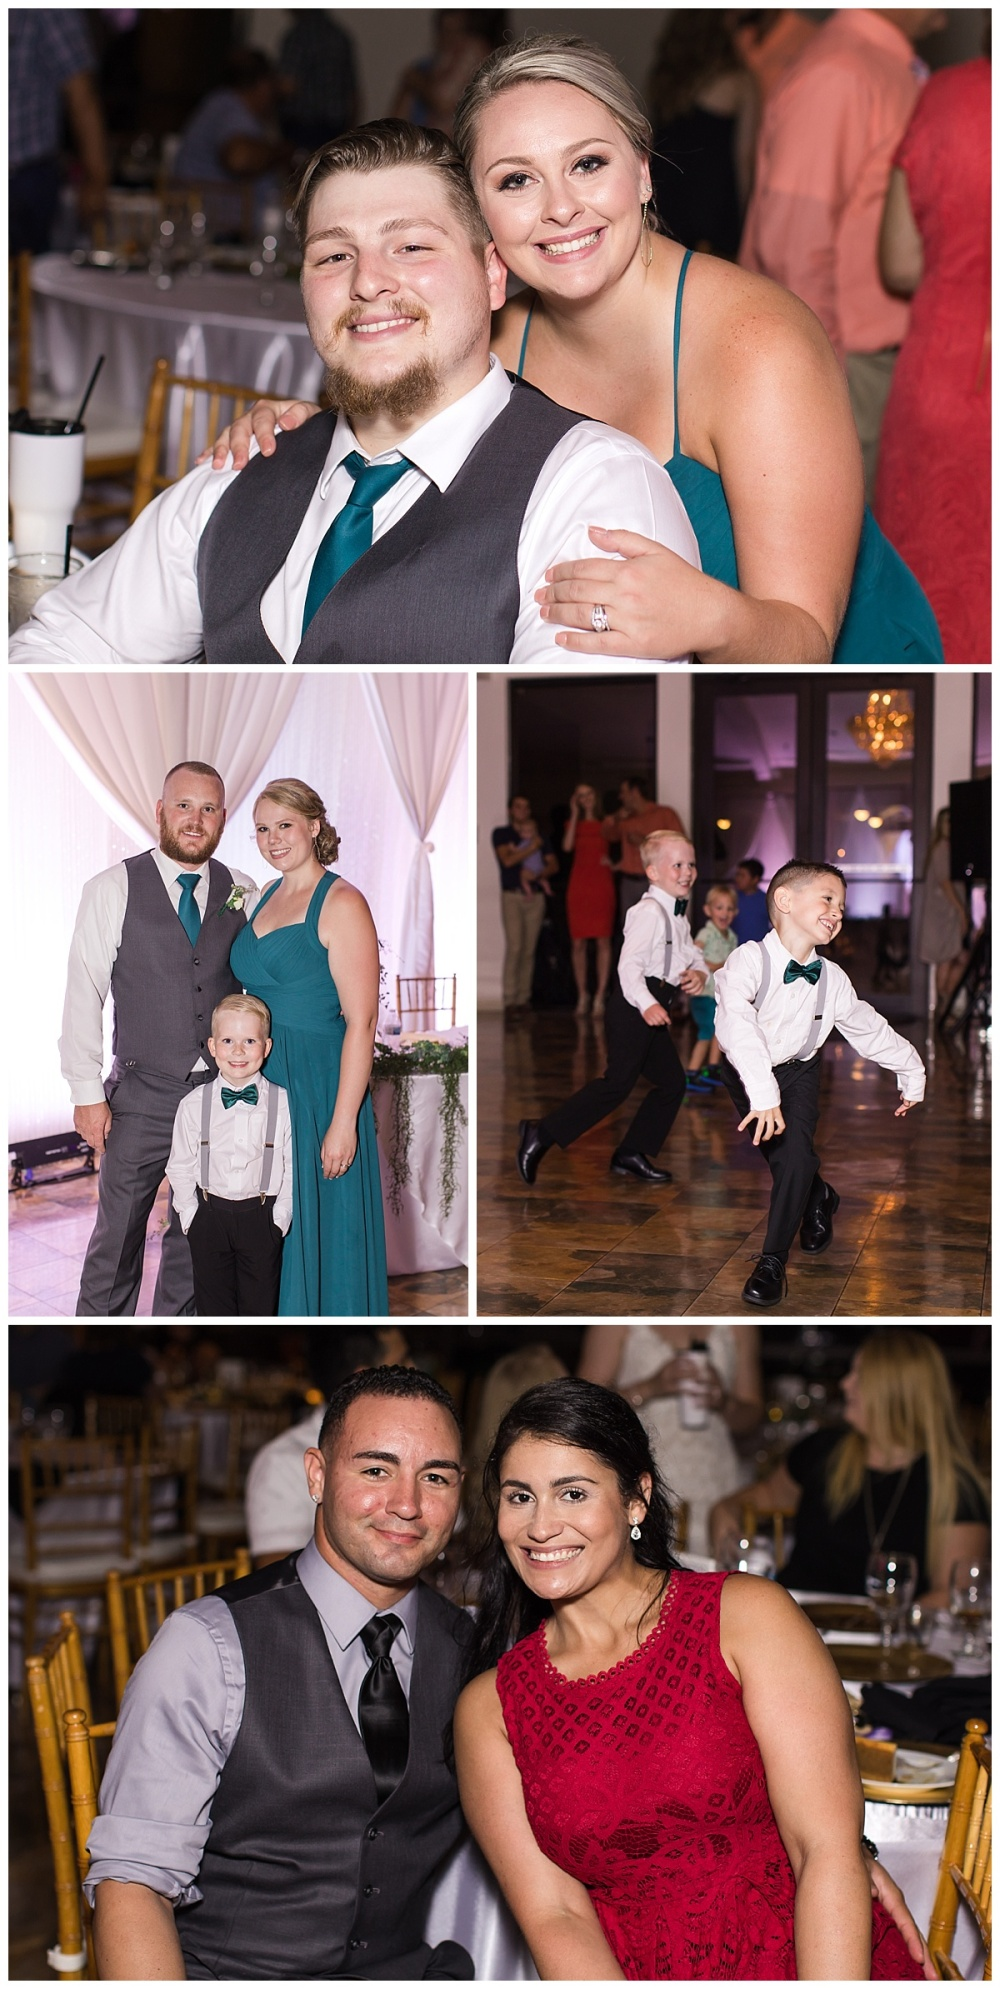 Carly-Barton-Photography-Wedding-Photos-Granberry-Hills-Event-Facility-Ryan-Chelsea-San-Antonio-Texas_0059.jpg